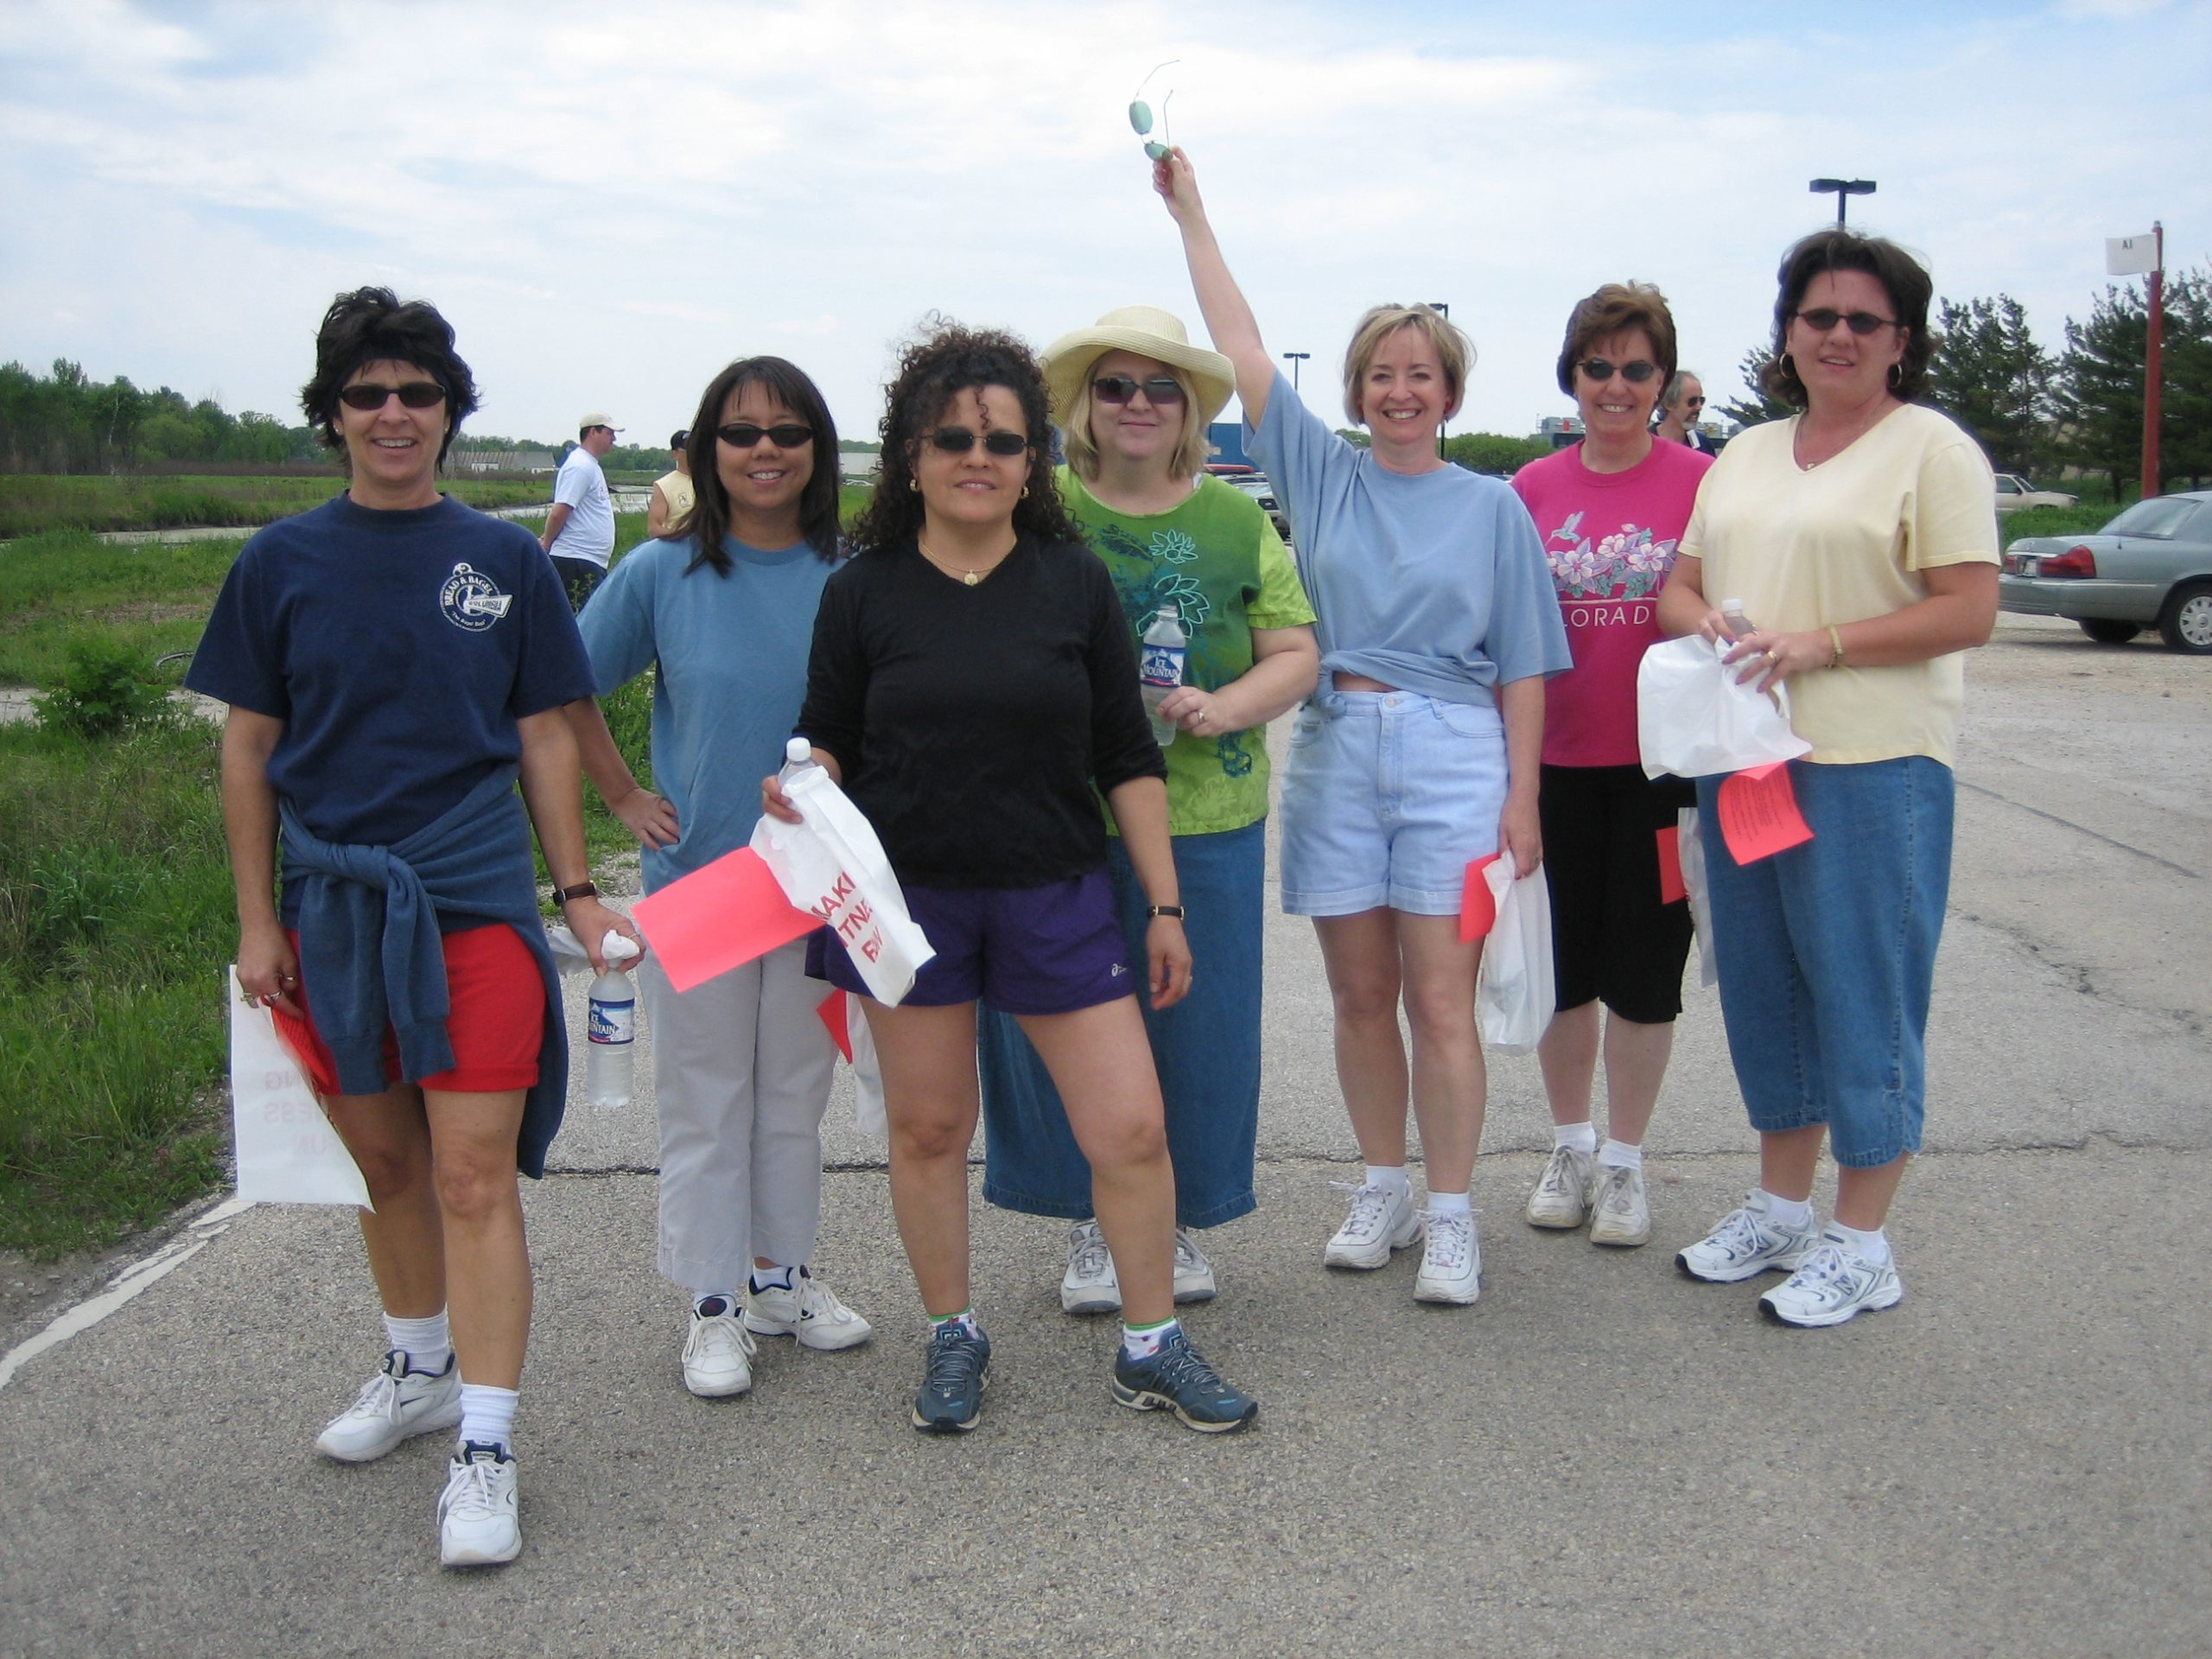 Throwback Thursday: In 2006, this group enjoys their time walking around the Main Ring for fitness. people, lab life Photo: Leticia Shaddix